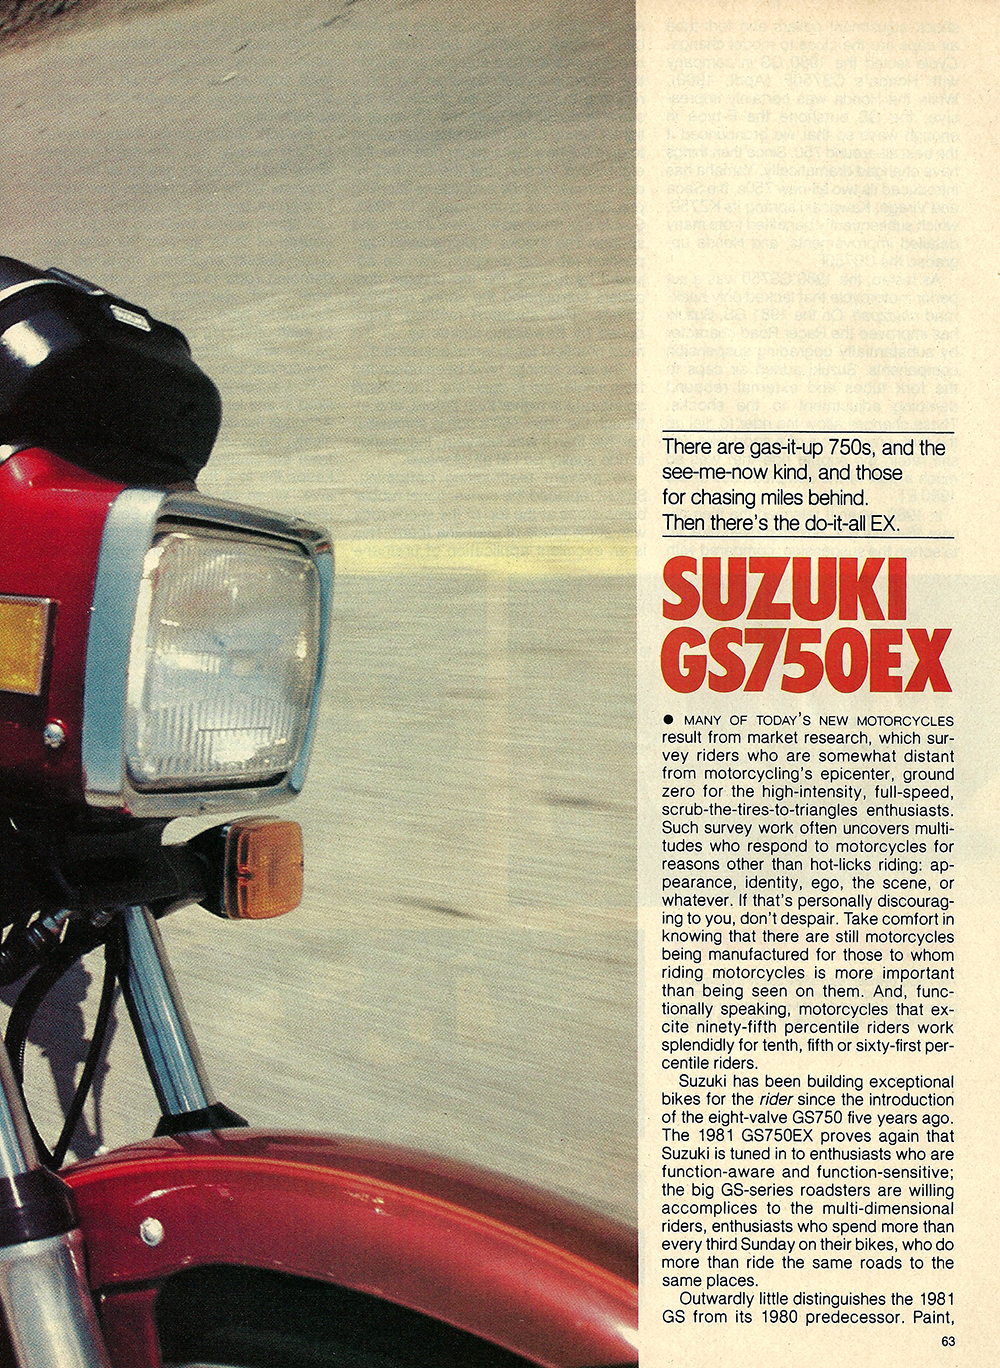 1981 Suzuki GS750 EX road test 02.jpg